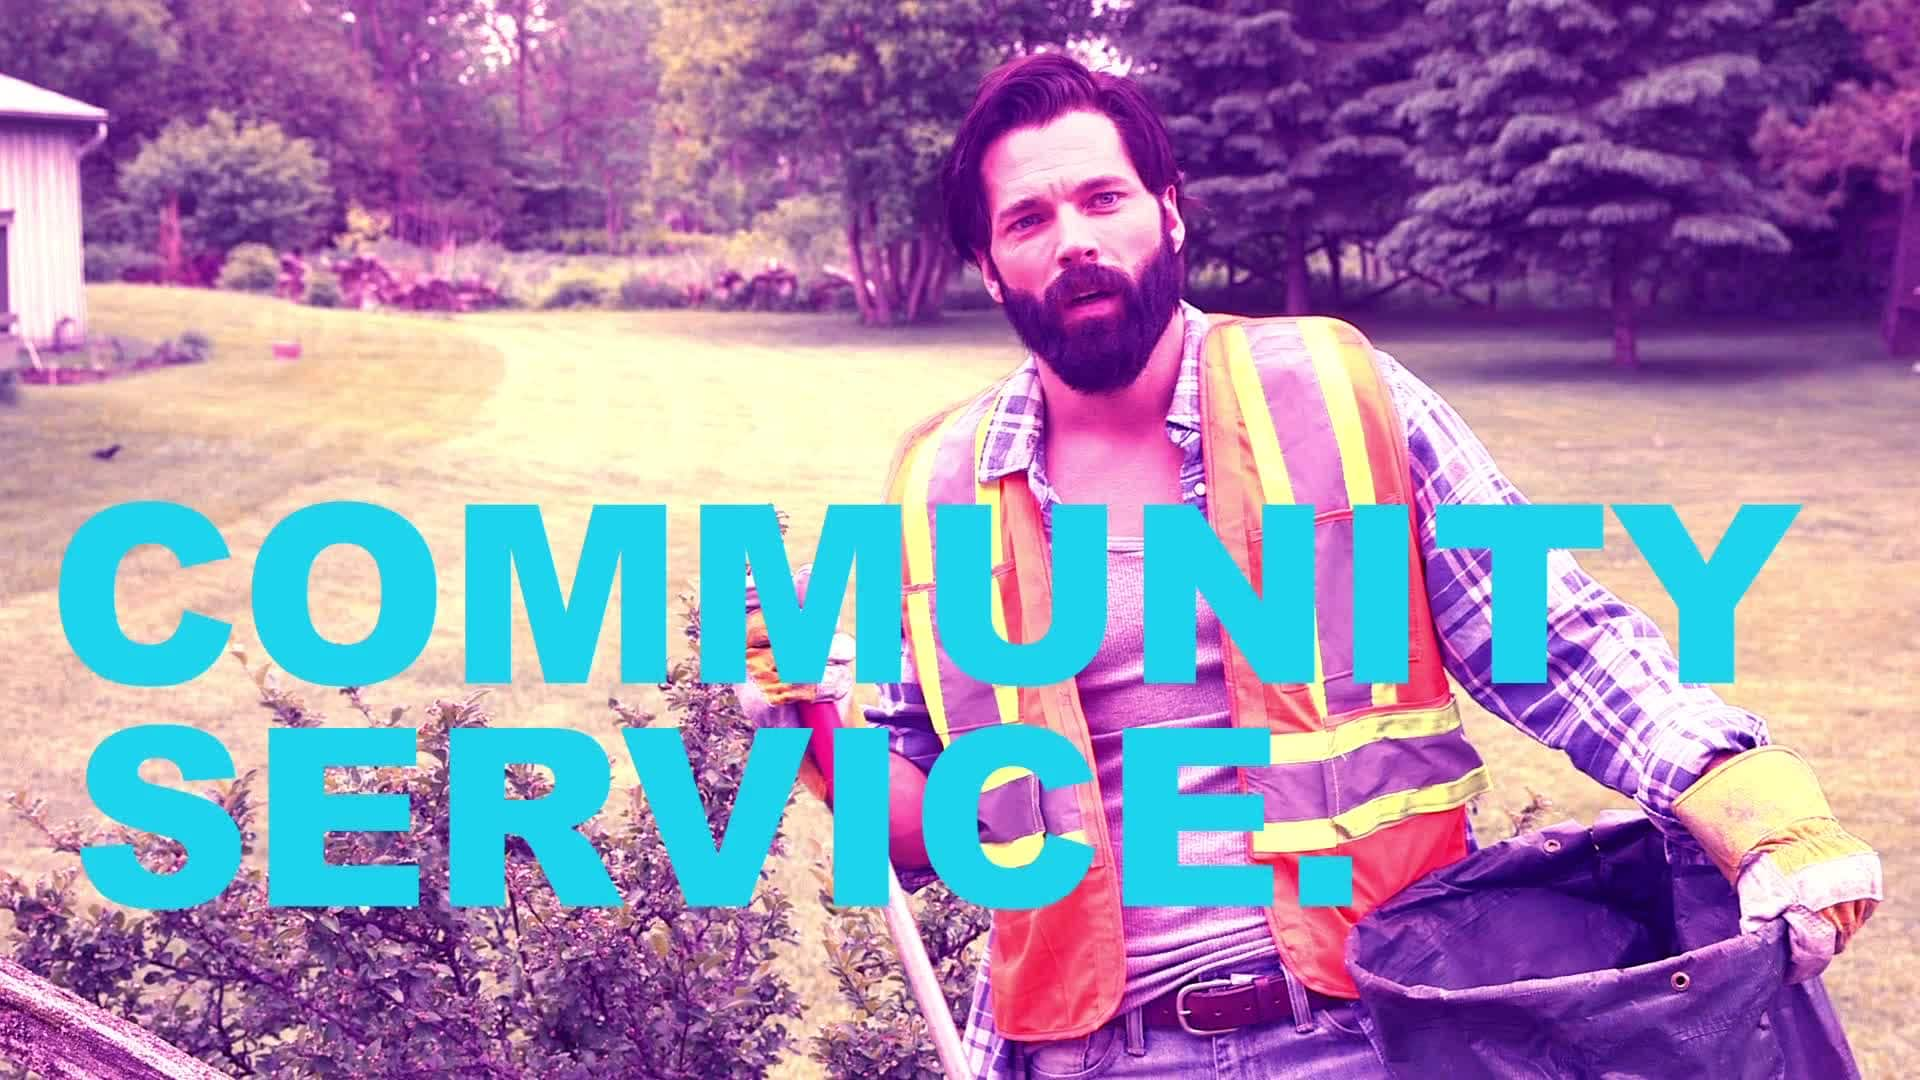 SCwebisode108communityservice